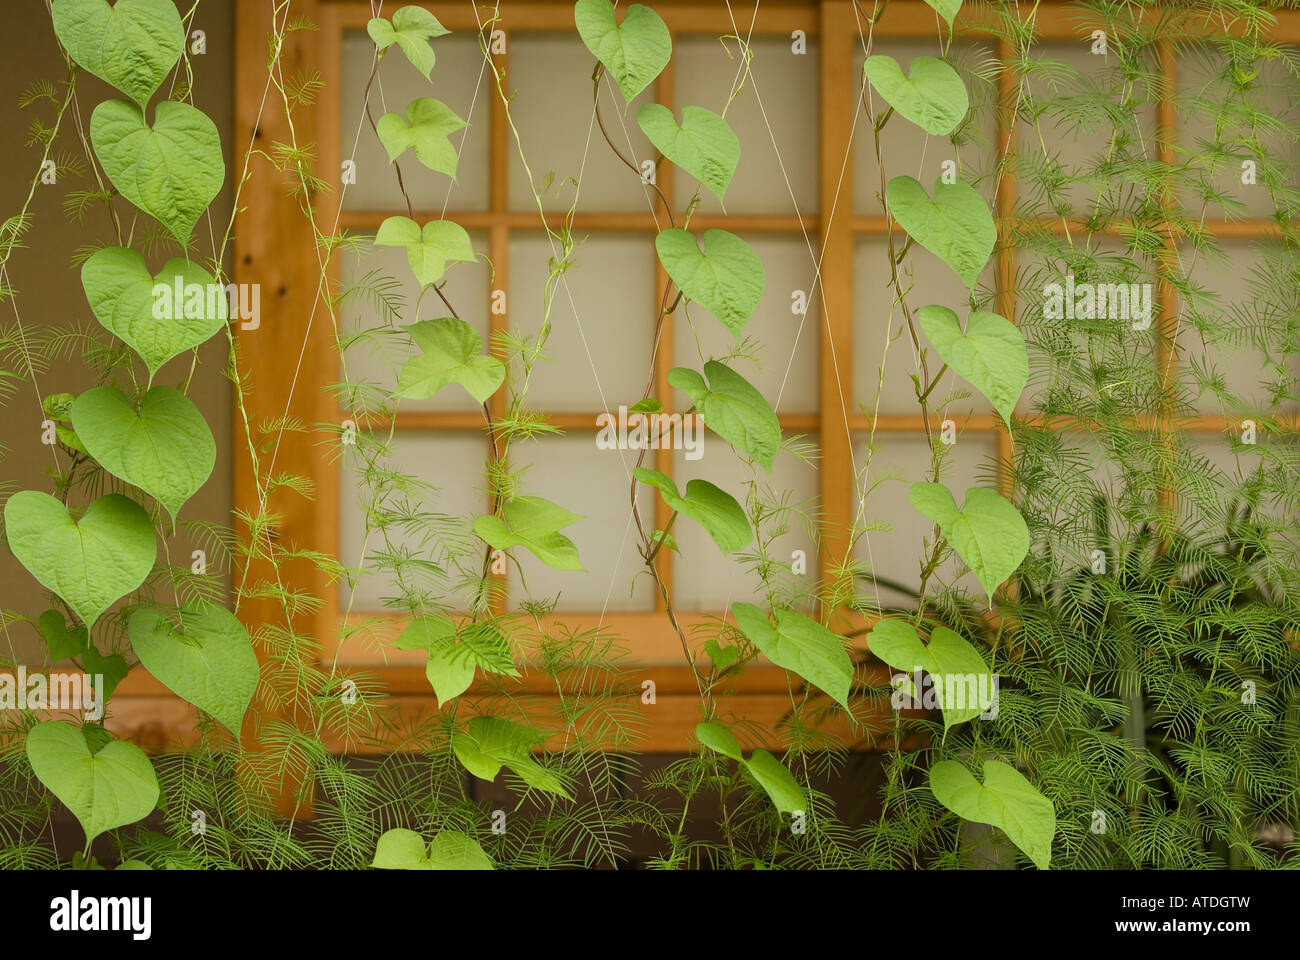 Creeper Plant Stock Photos & Creeper Plant Stock Images - Page 2 - Alamy